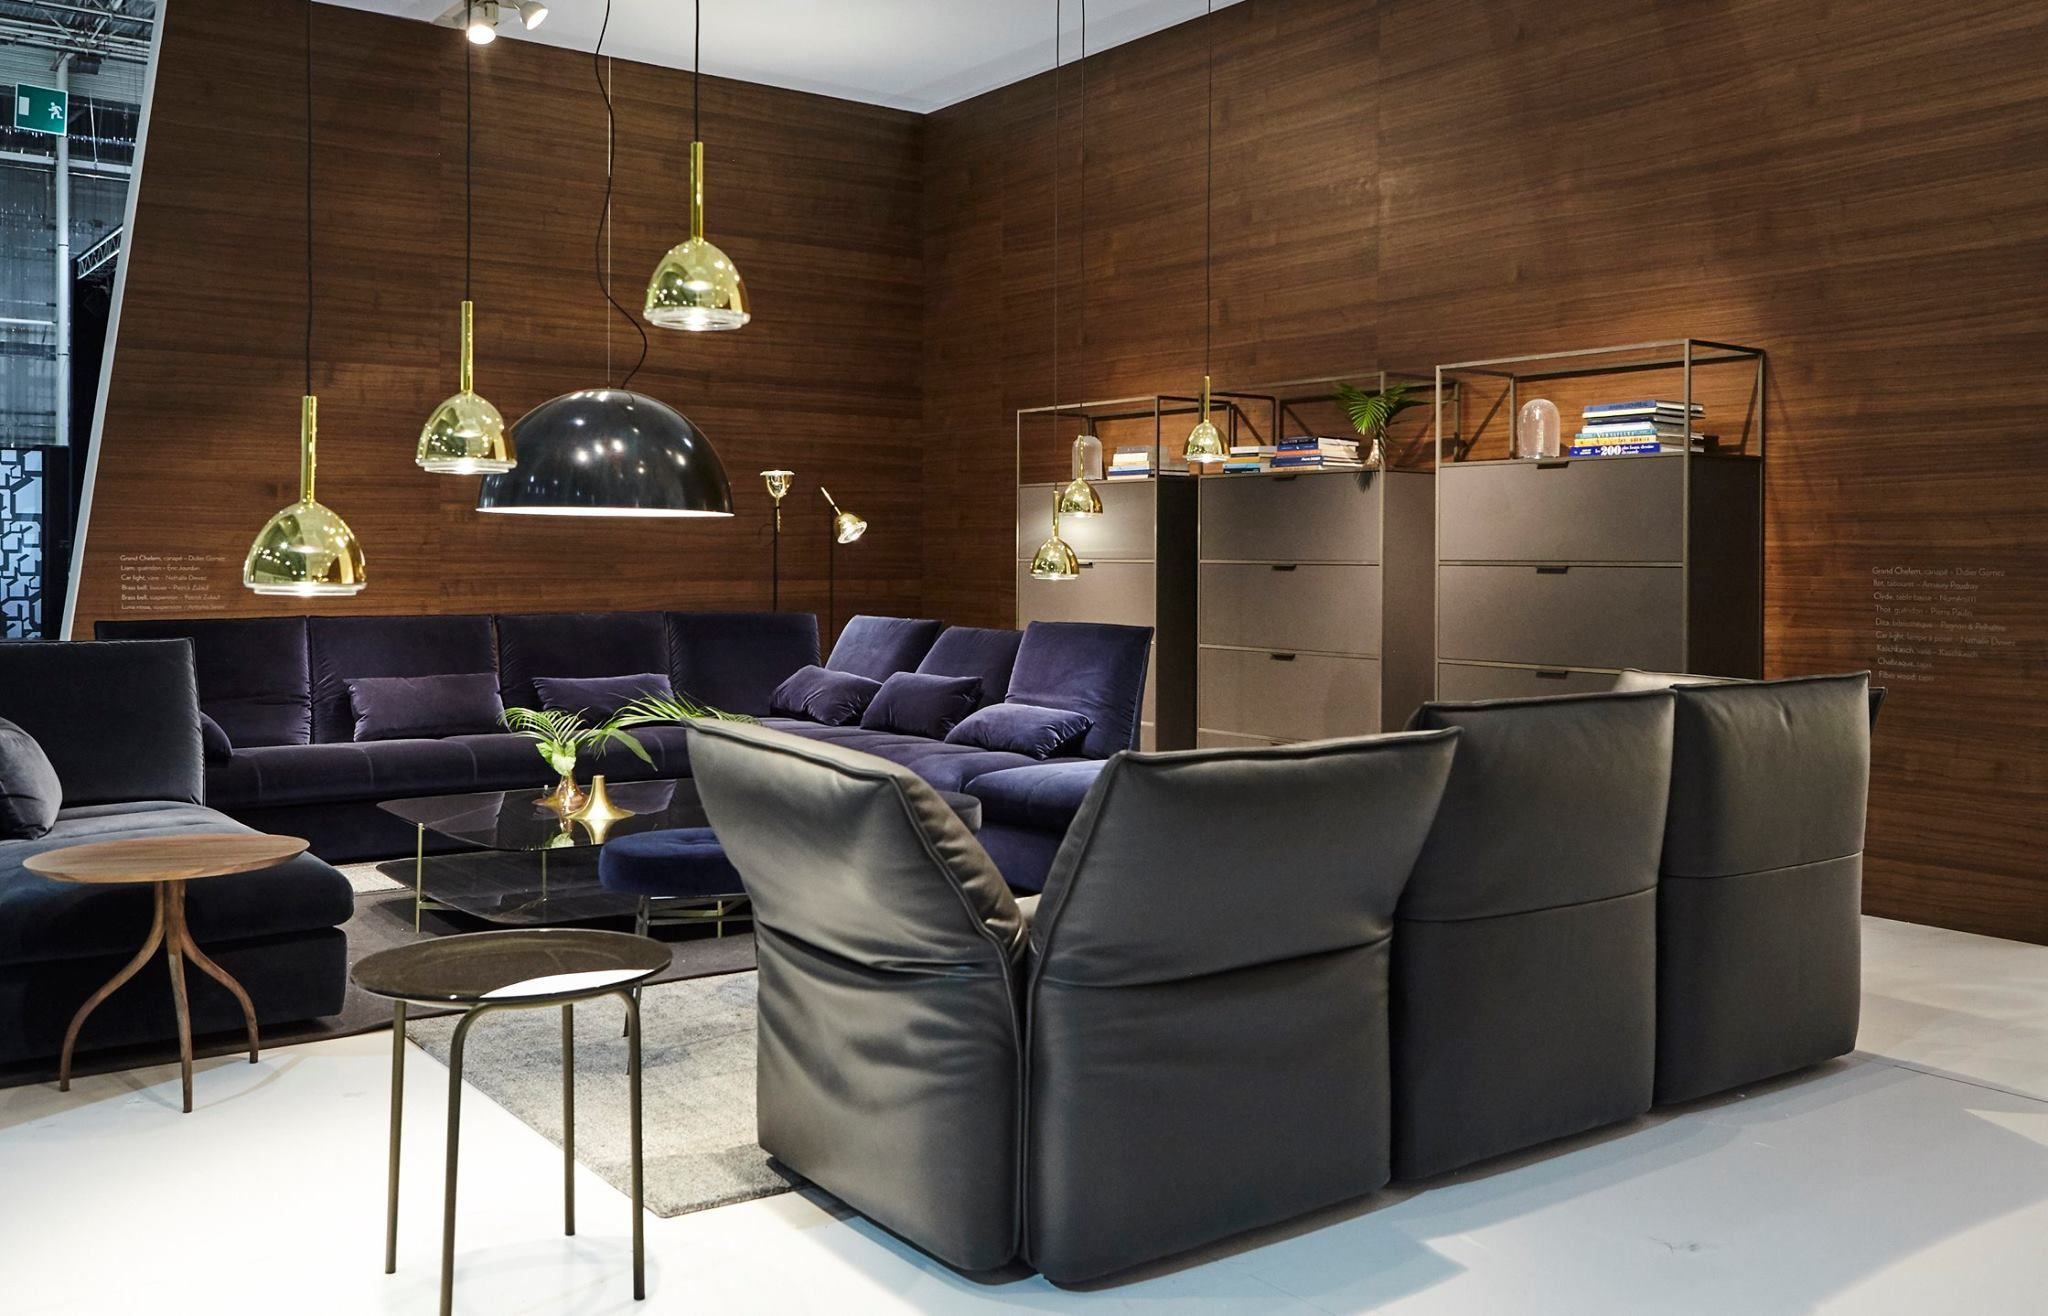 ligne roset at maison objet 2017 view highlights of the ligne roset s booth from the maison. Black Bedroom Furniture Sets. Home Design Ideas